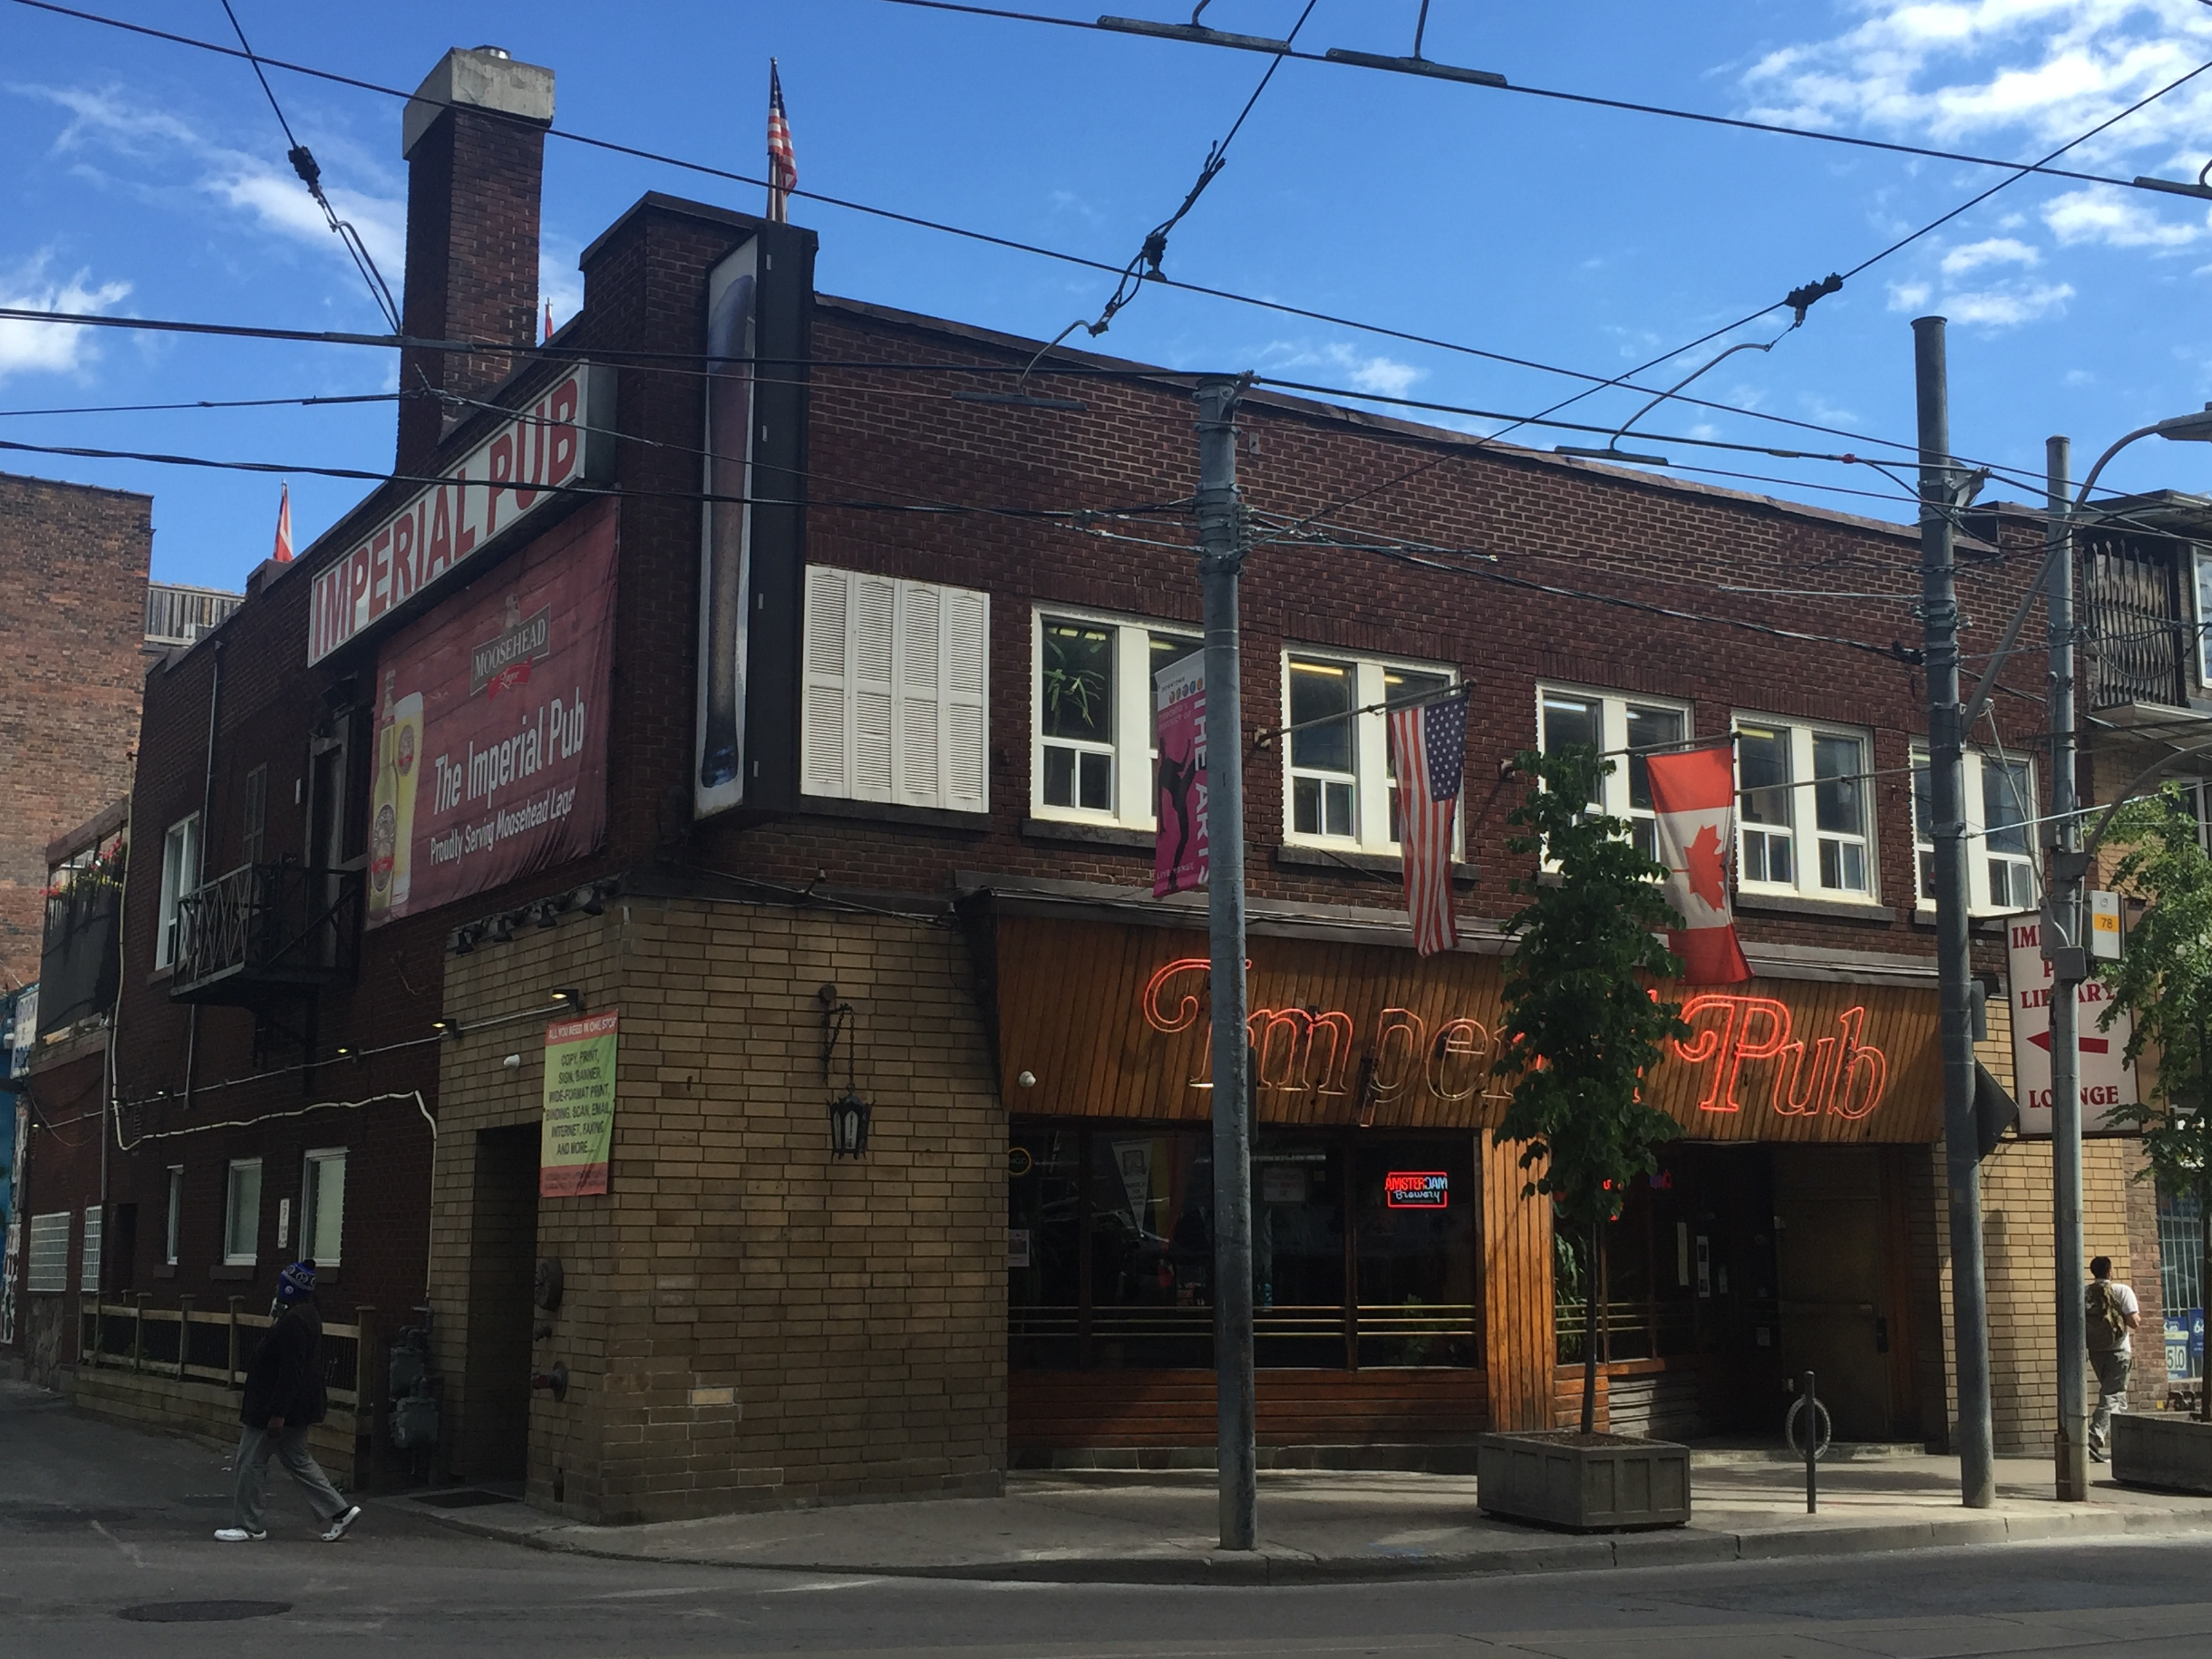 The Imperial Pub - 680 NEWS